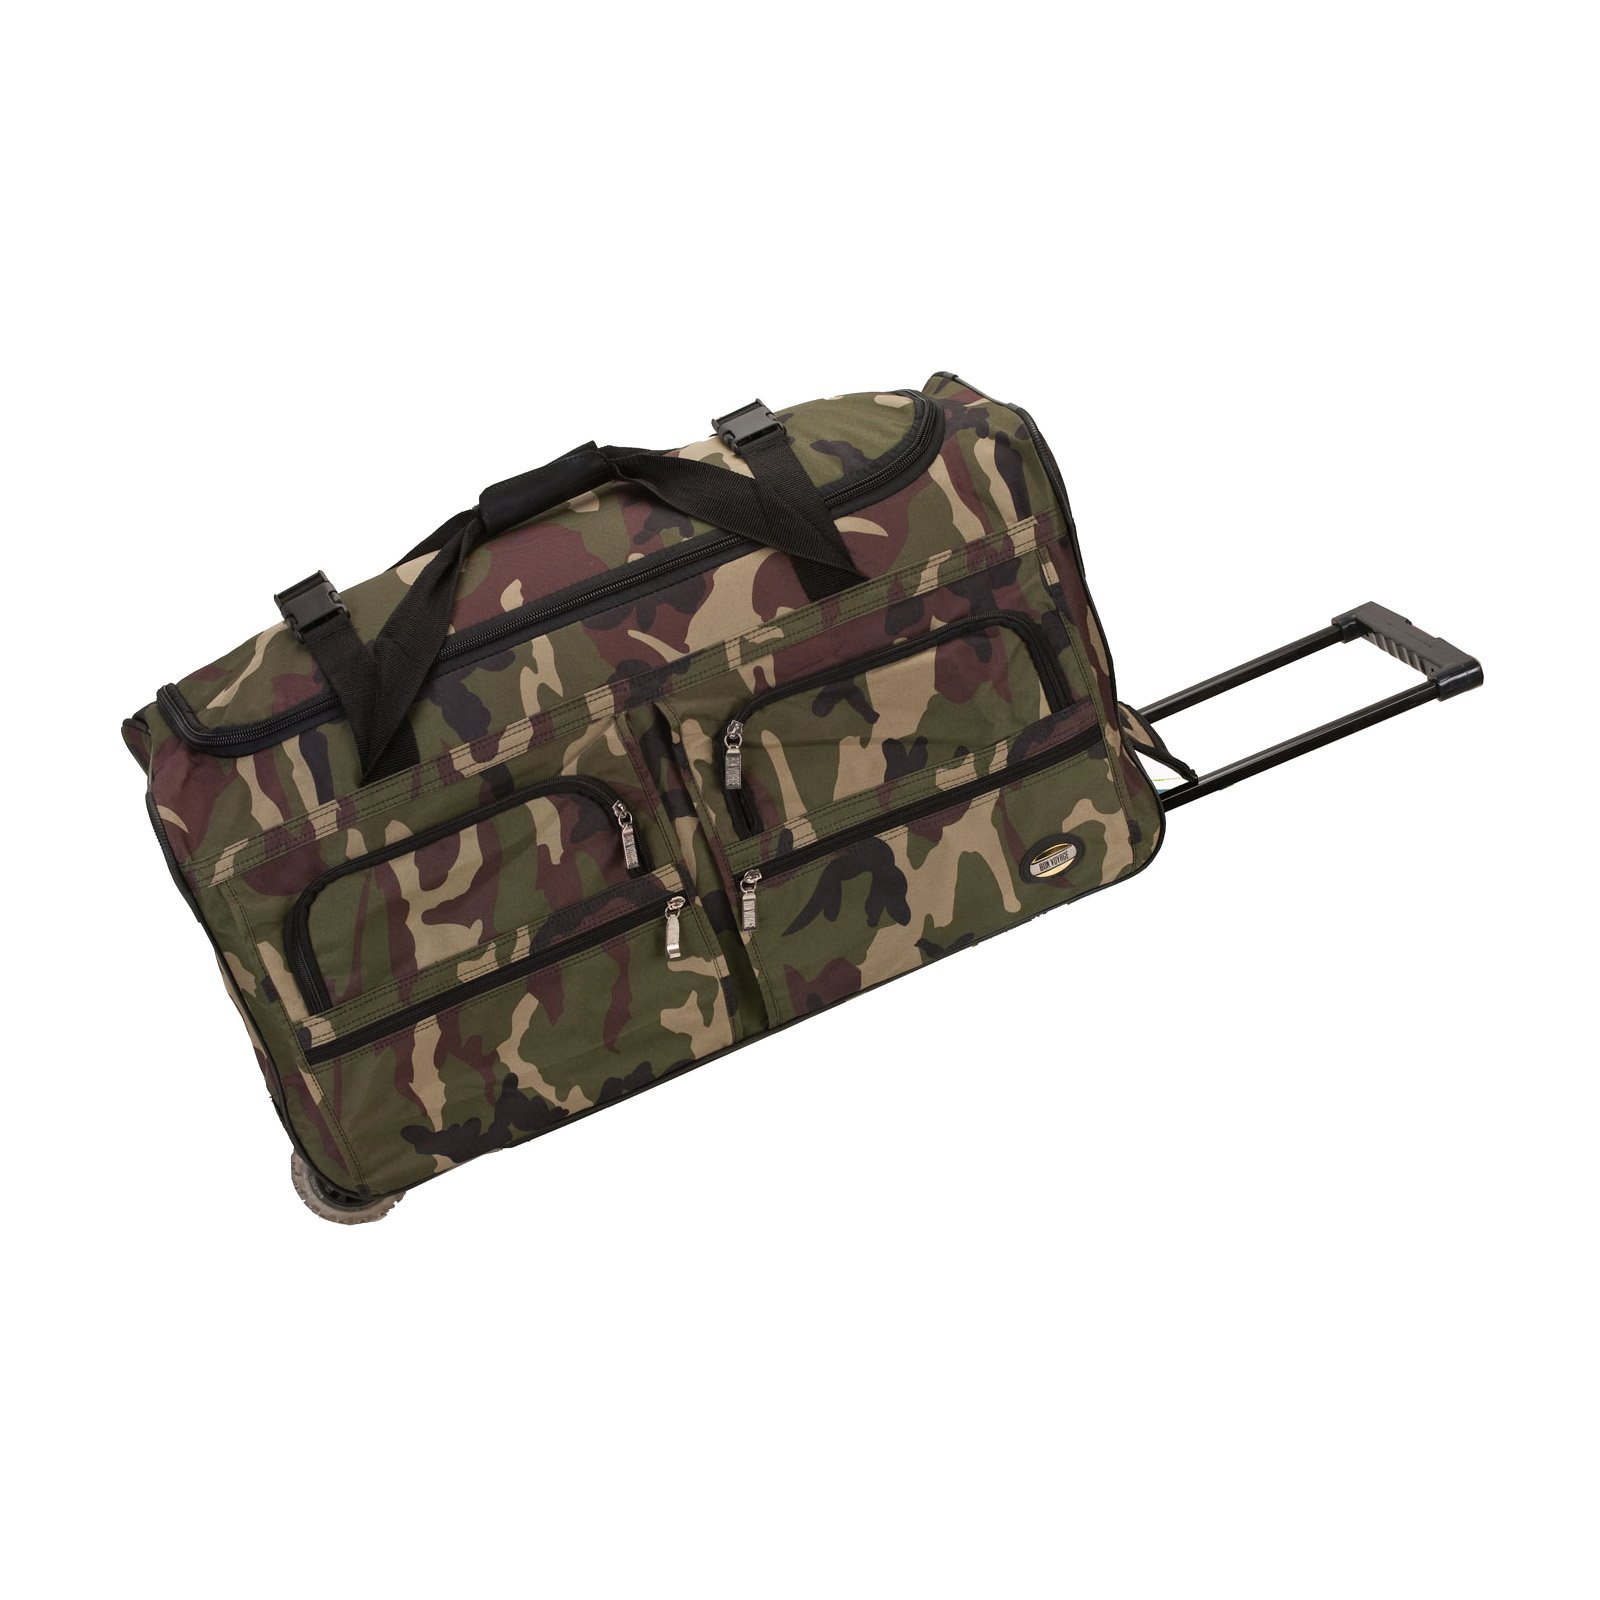 "Rockland Luggage 36"" Rolling Duffle"